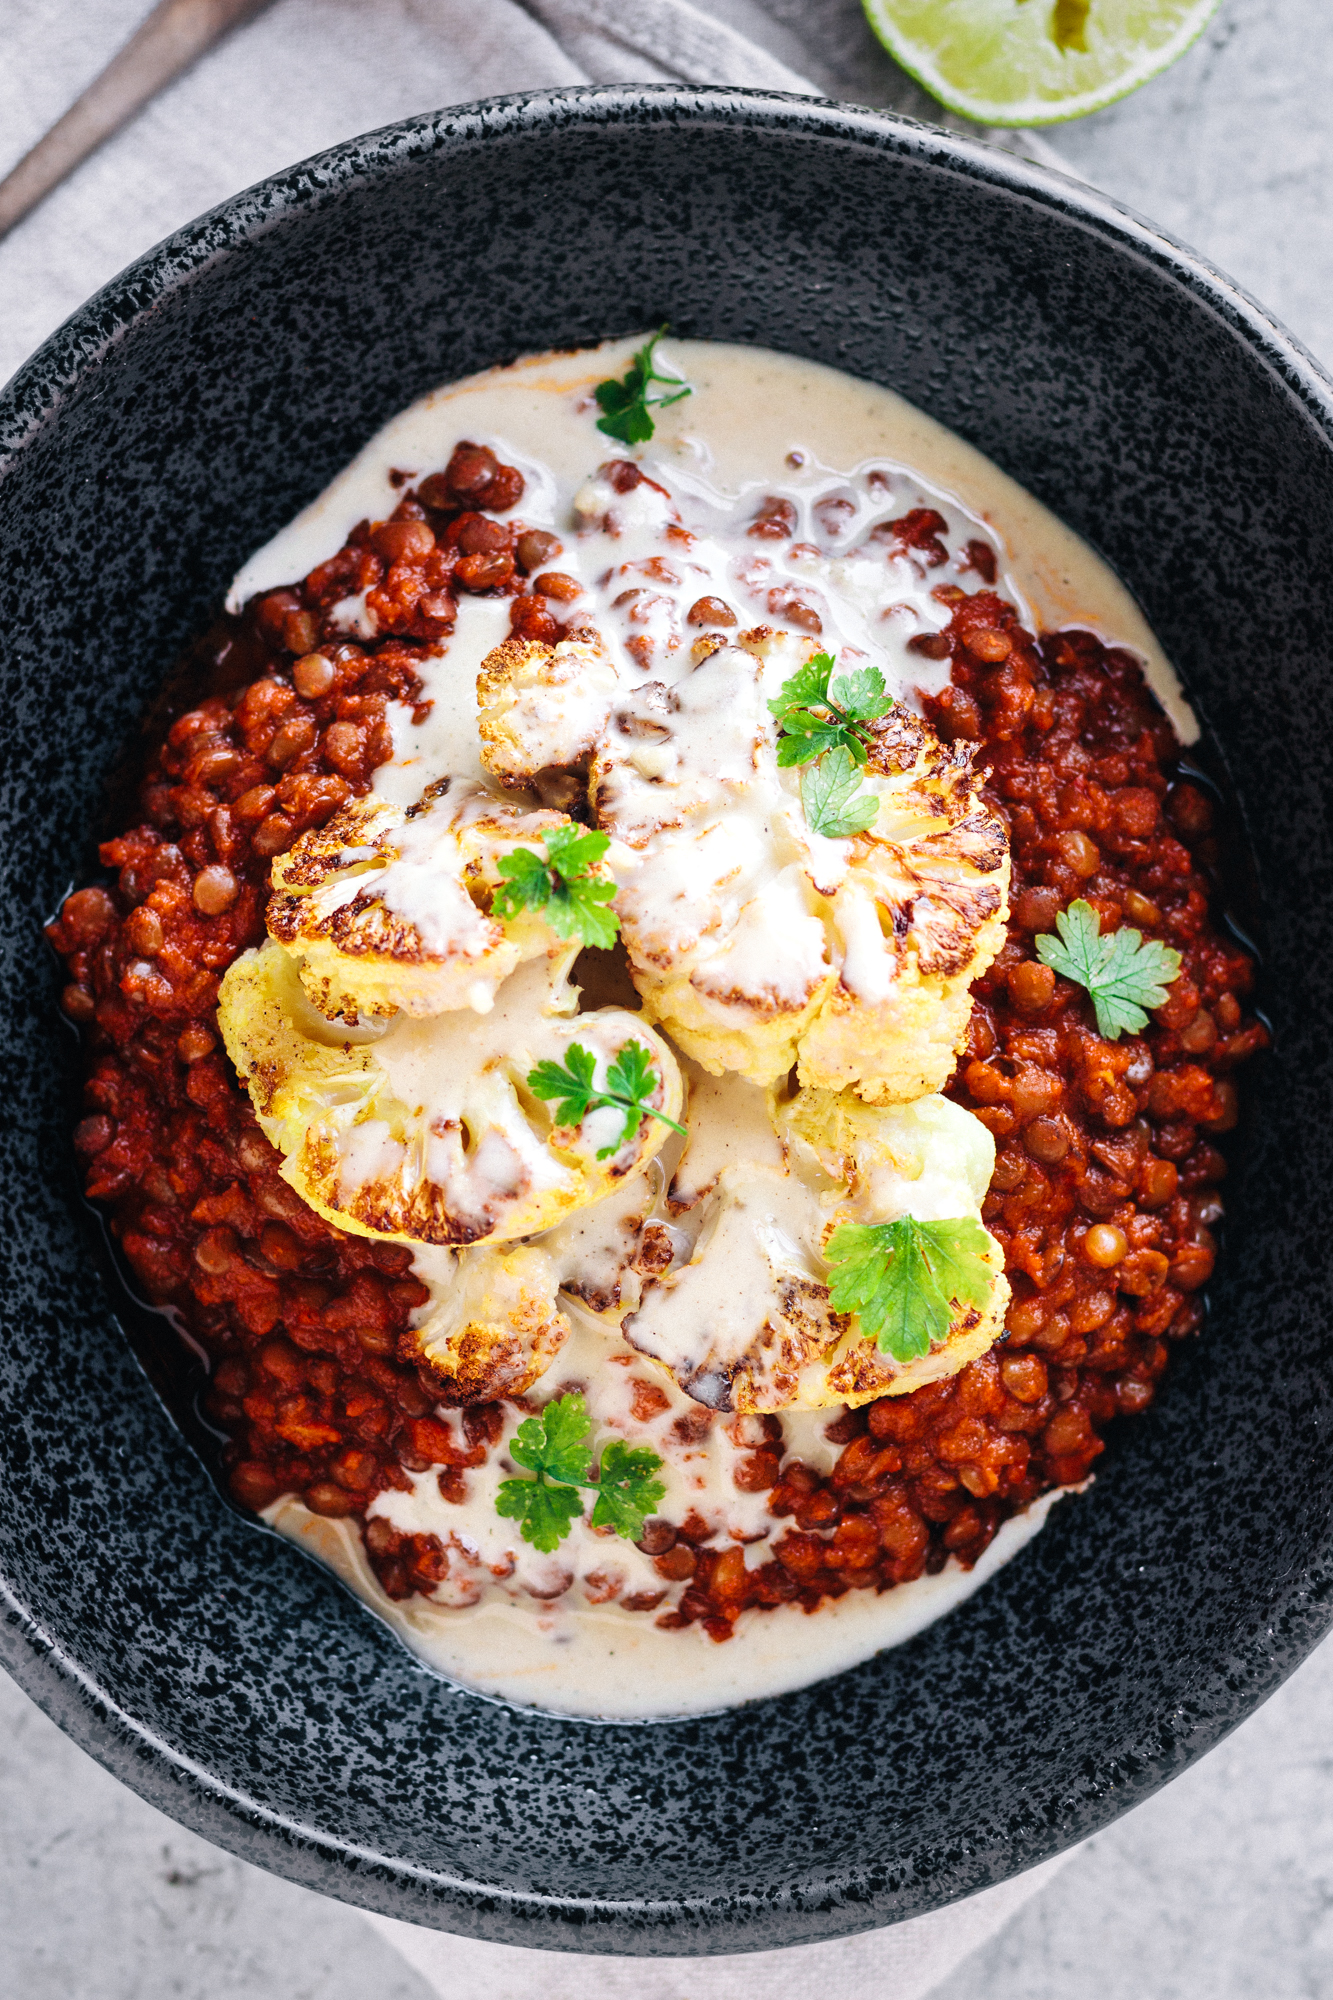 Vegan Mexican Spiced Lentils With Roasted Cauliflower And Tahini Drizzle